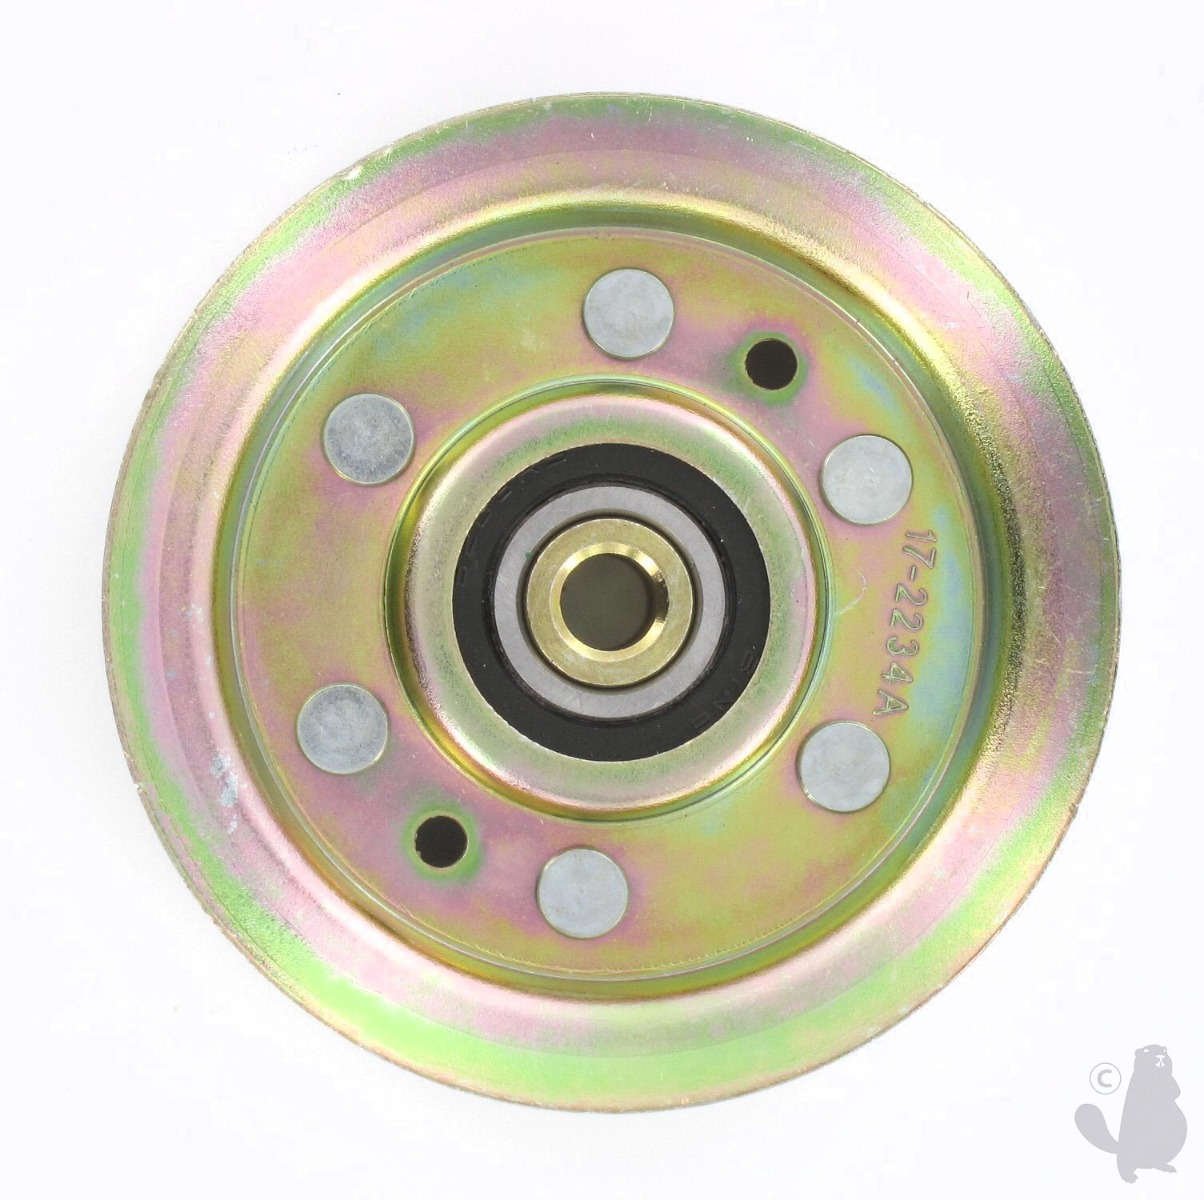 Garden Spares 6200826 Pulley Idler Flat with Bearing